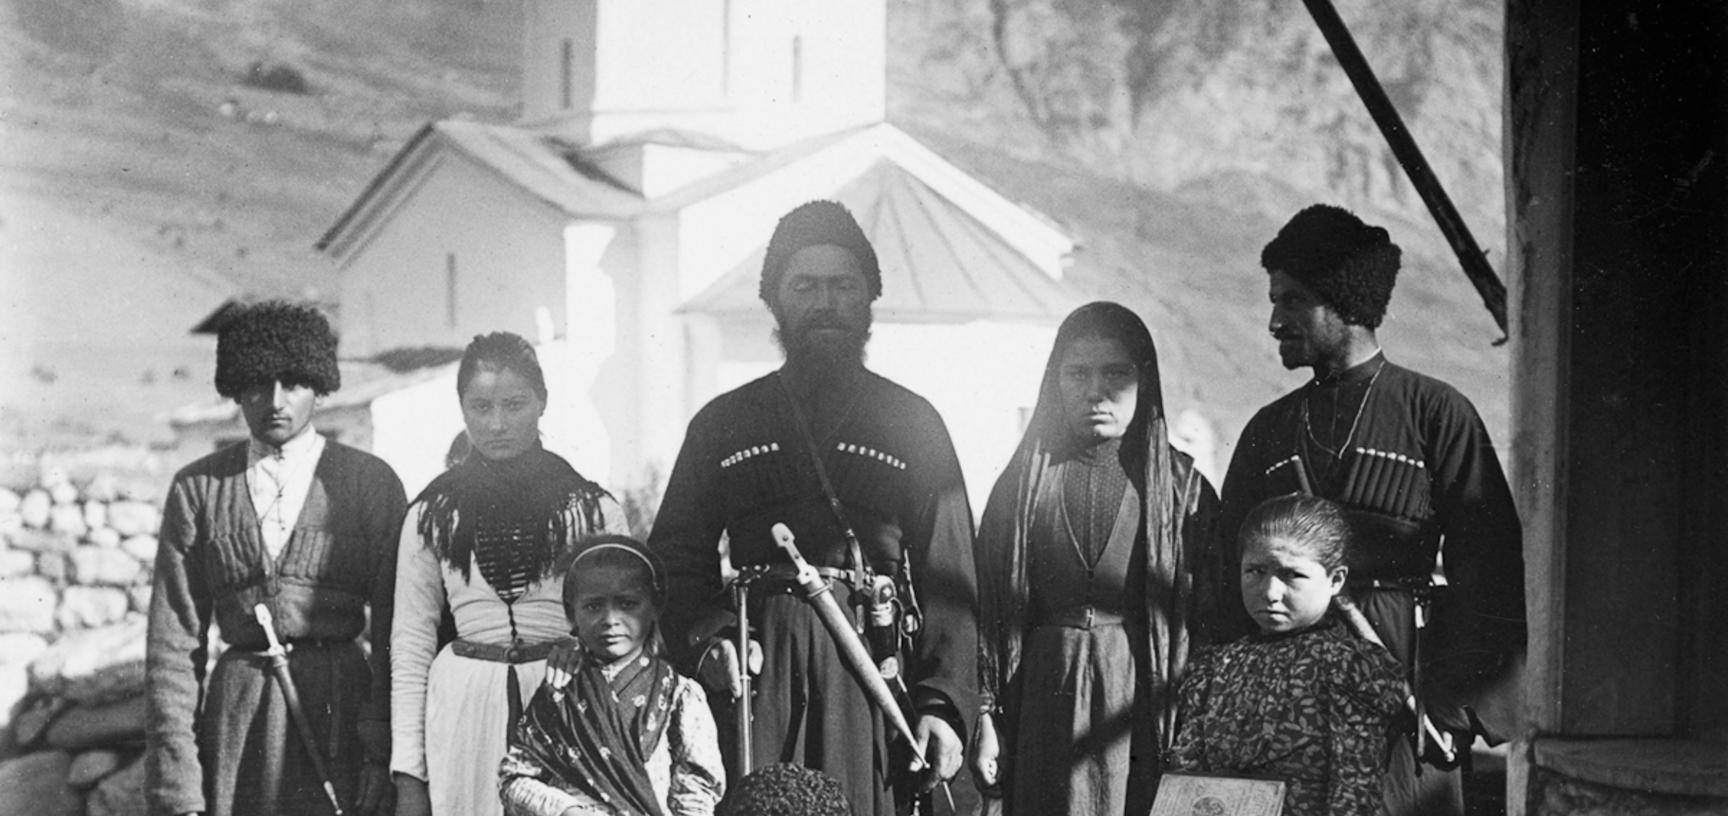 People in front of the church at Dallagkau near Kazbek. Photograph by Baddeley. Dallagkau, Republic of North Ossetia-Alania, Russia. August 1902.